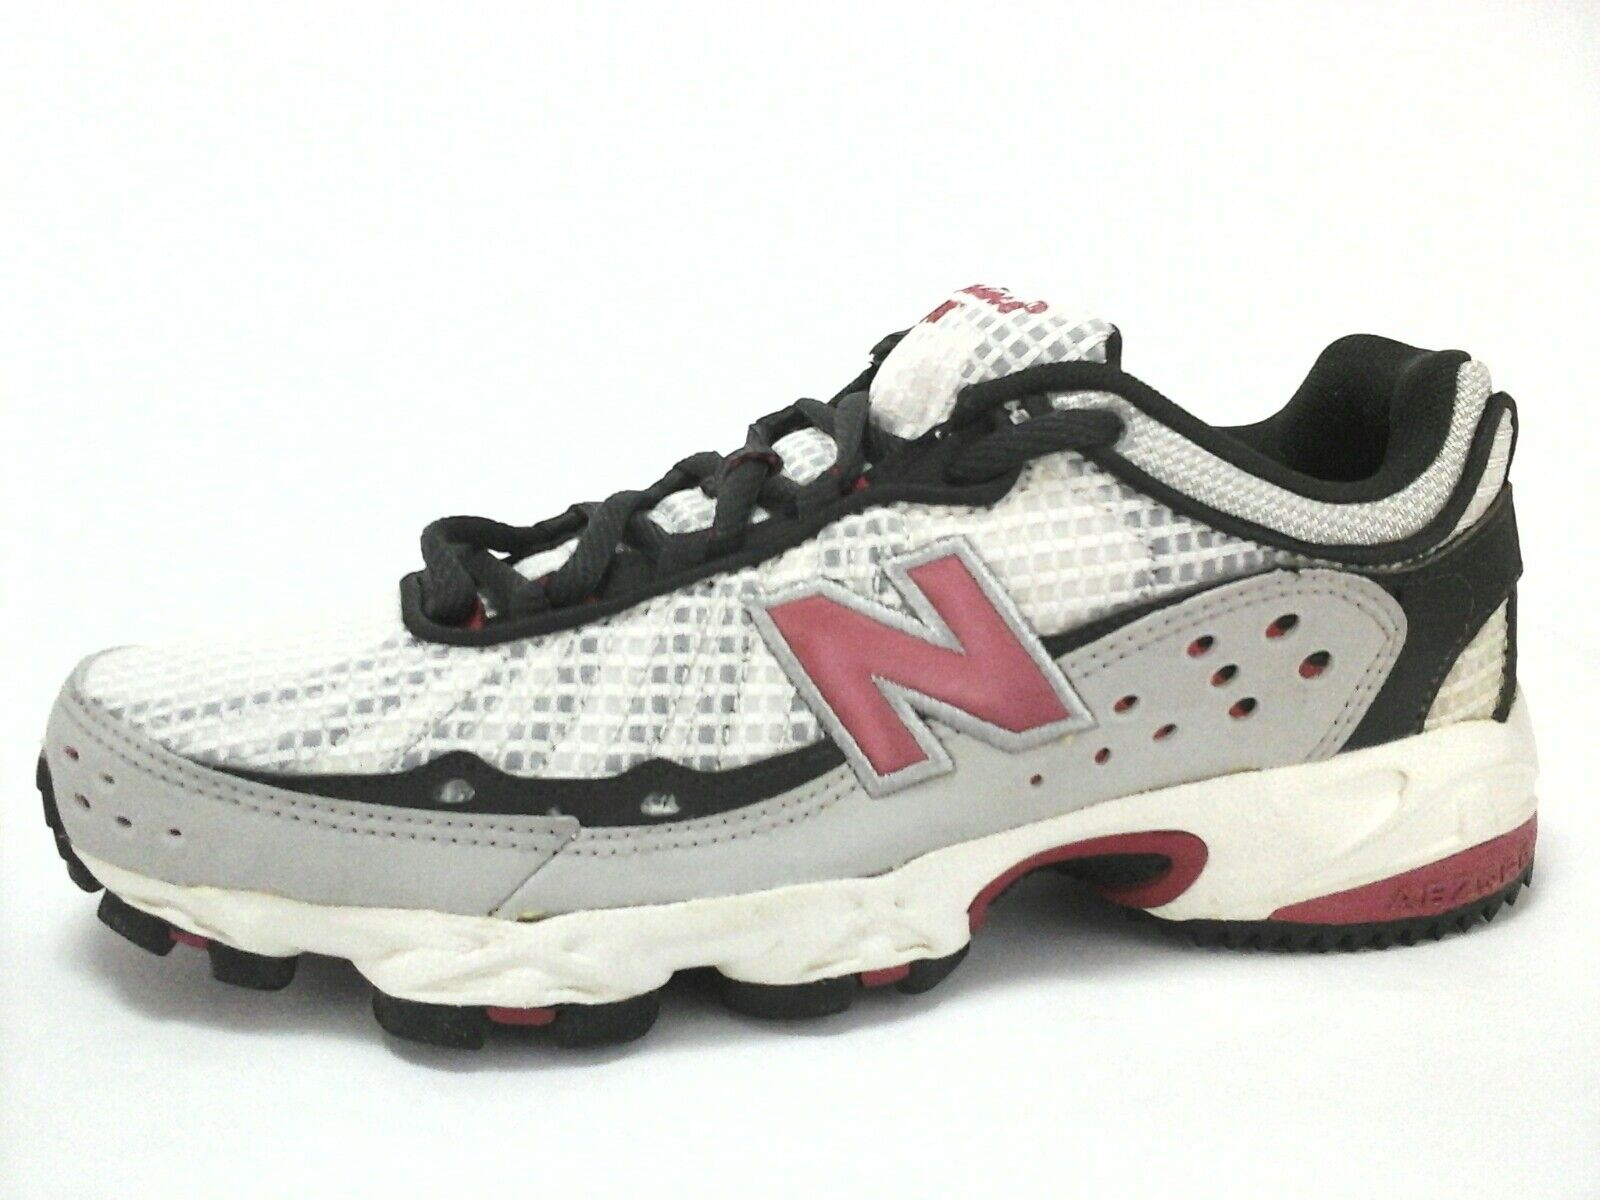 NEW BALANCE shoes AT 608 US 7 Running Sneakers Women's White Pink